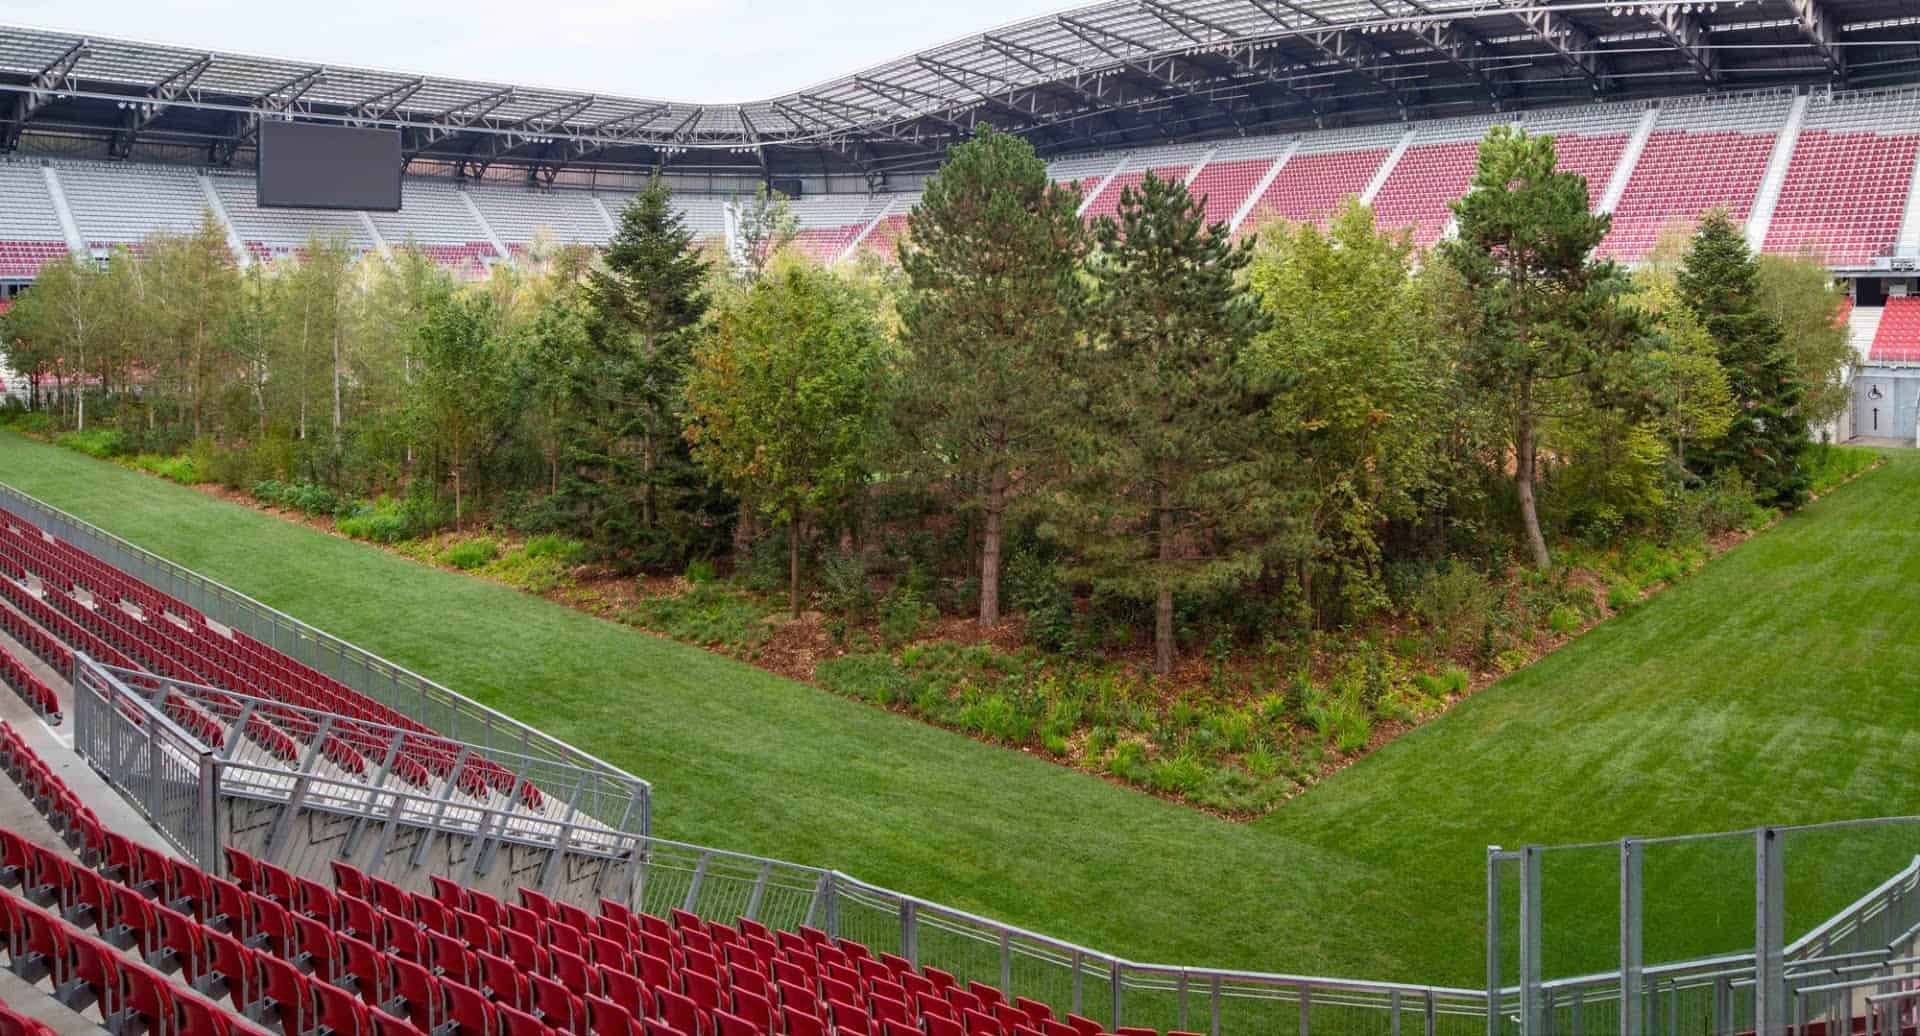 for forest bos in voetbalstadion mixed grill kunst 8